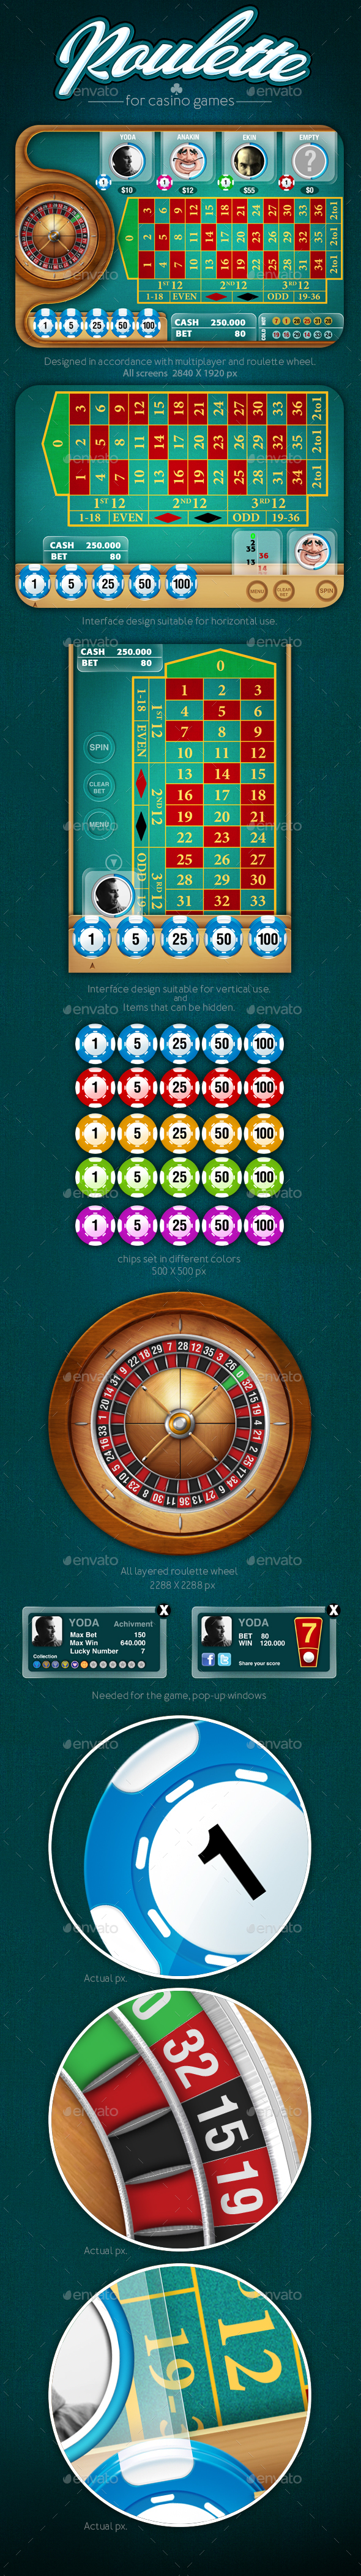 Roulette Game for Mobile Platforms - User Interfaces Game Assets